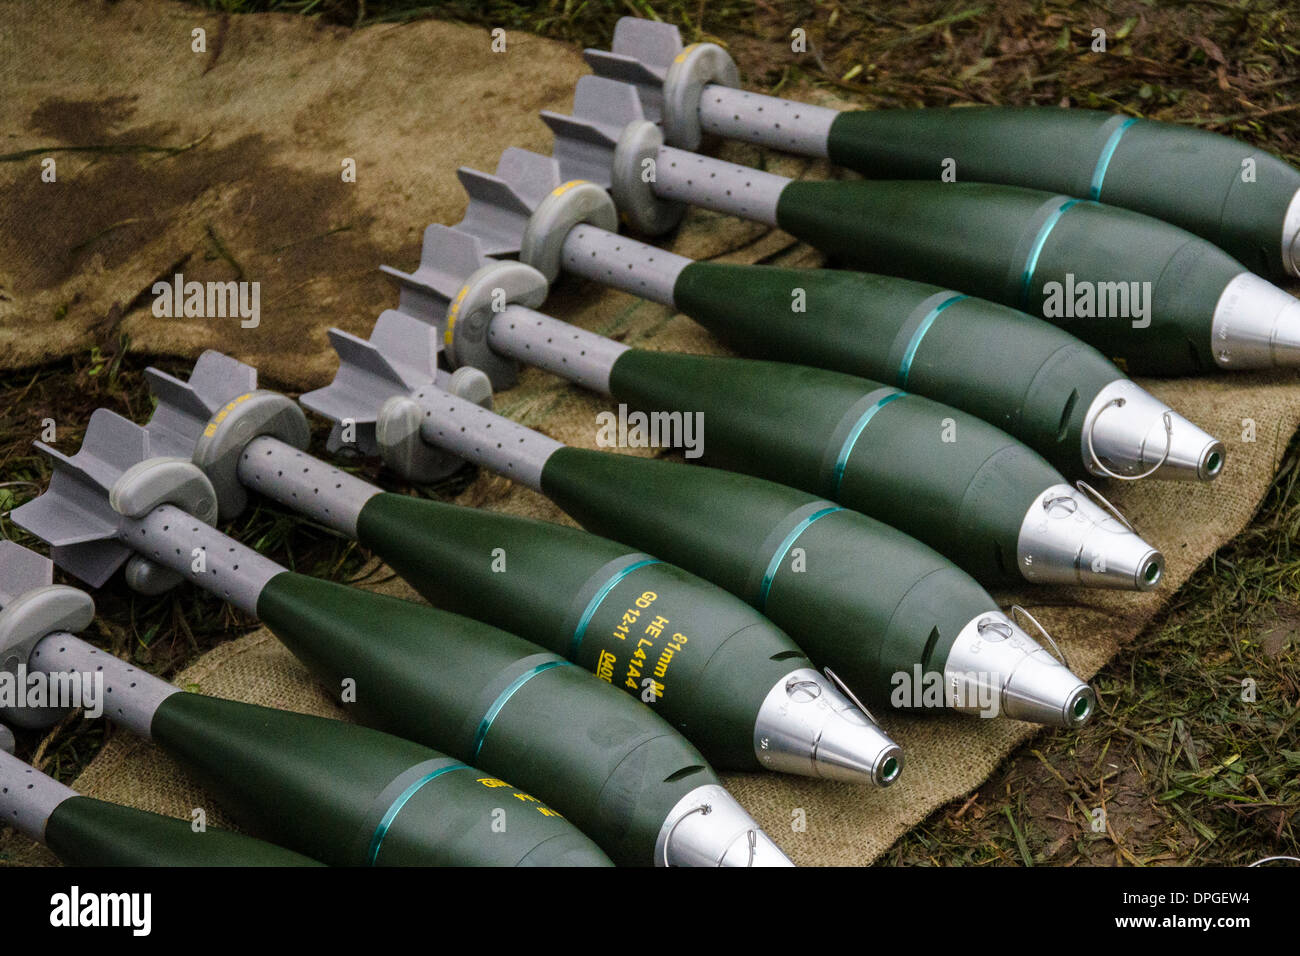 81mm mortar HE rounds,hie explosive rounds with fuses